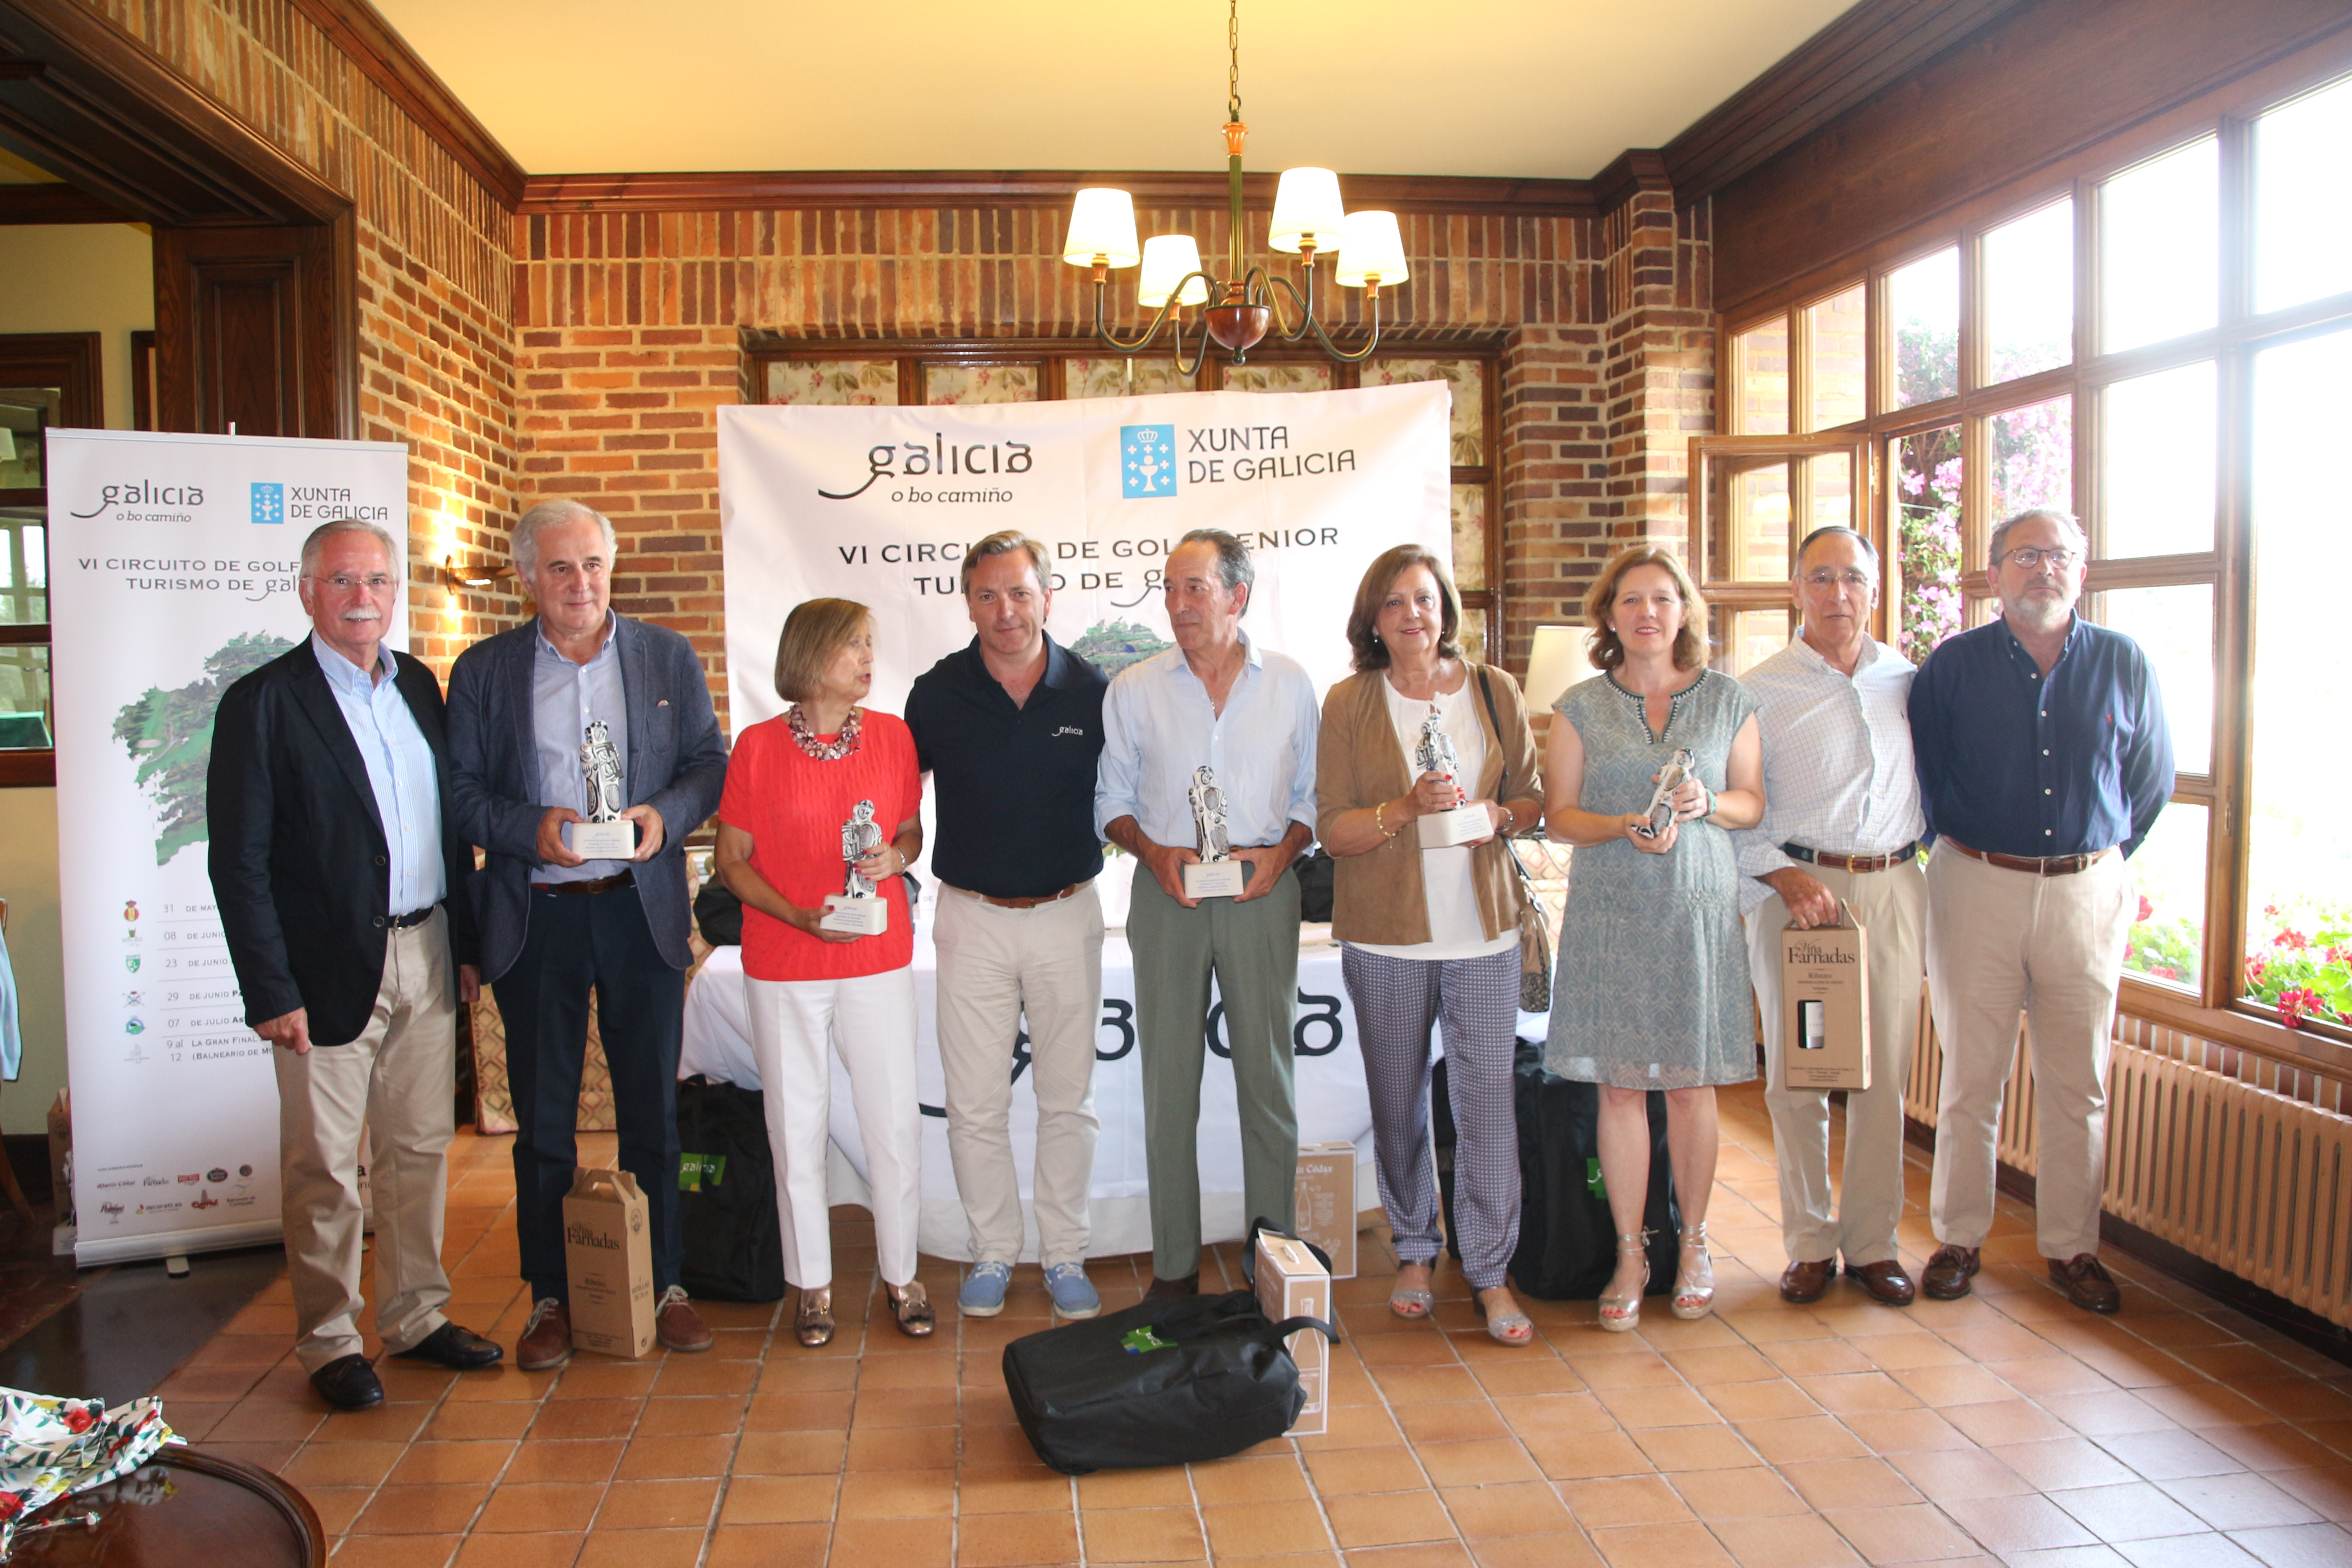 [:es]Un centenar de golfistas cierran la ronda clasificatoria del Circuito Senior Turismo de GaliciaUn centenar de golfistas pechan a rolda clasificatoria do Circuíto Senior Turismo de GaliciaOne hundred golfers close the qualifying round of the Senior Circuit Galicia Tourism